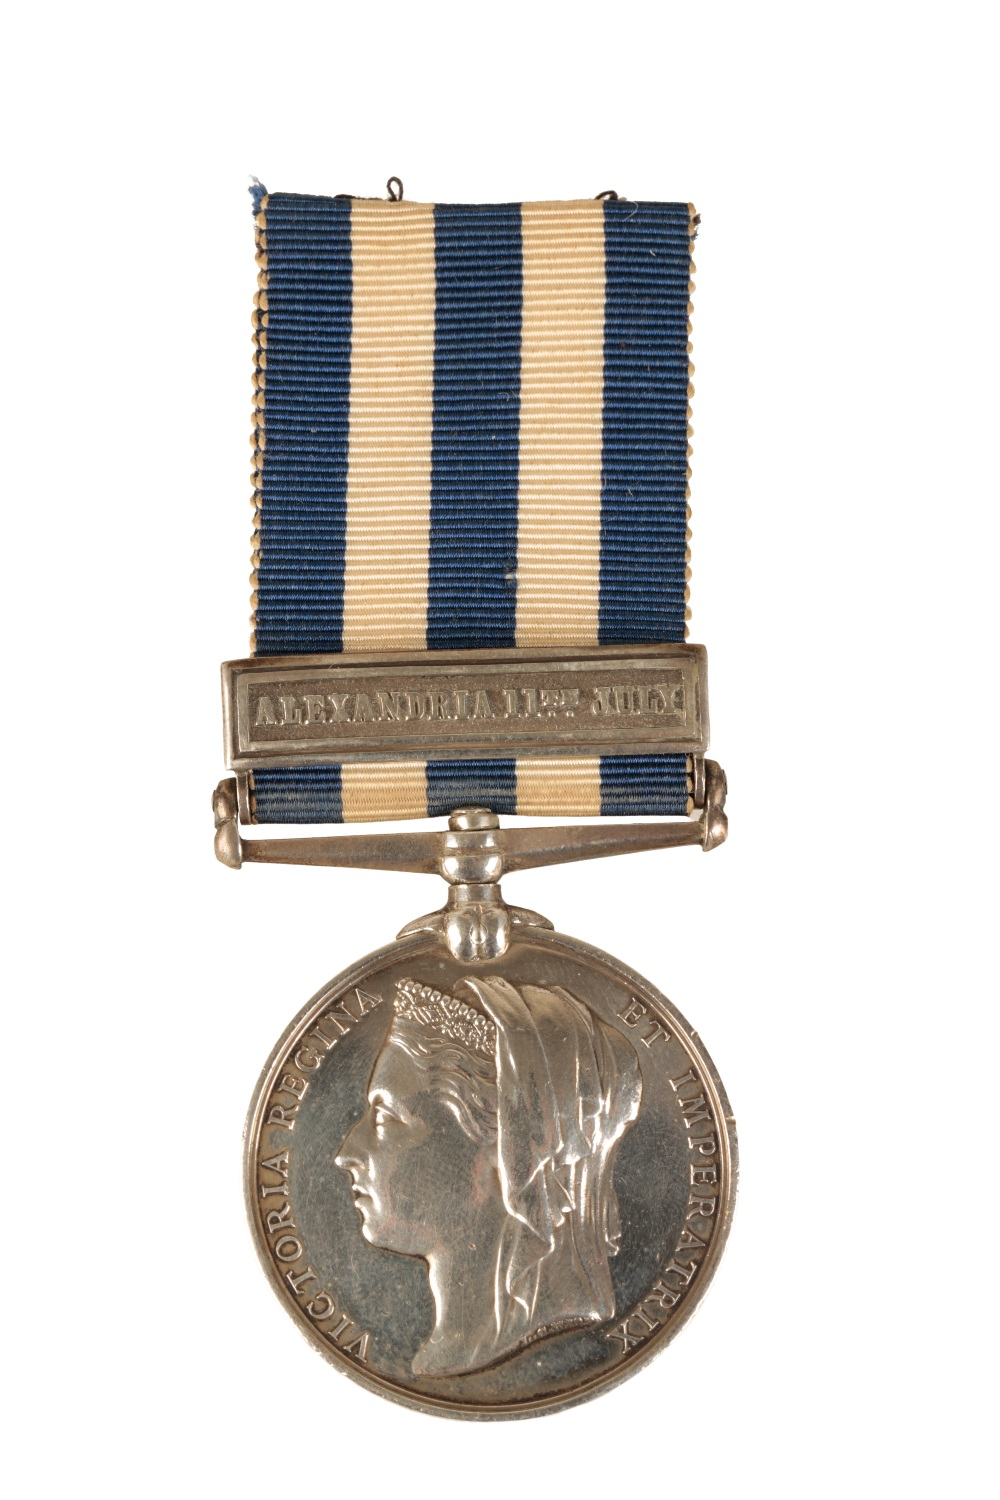 Lot 48 - EGYPT MEDAL 1882 BAR ALEXANDRIA 11TH JULY - TO P. MCKINNON OF HMS MONARCH